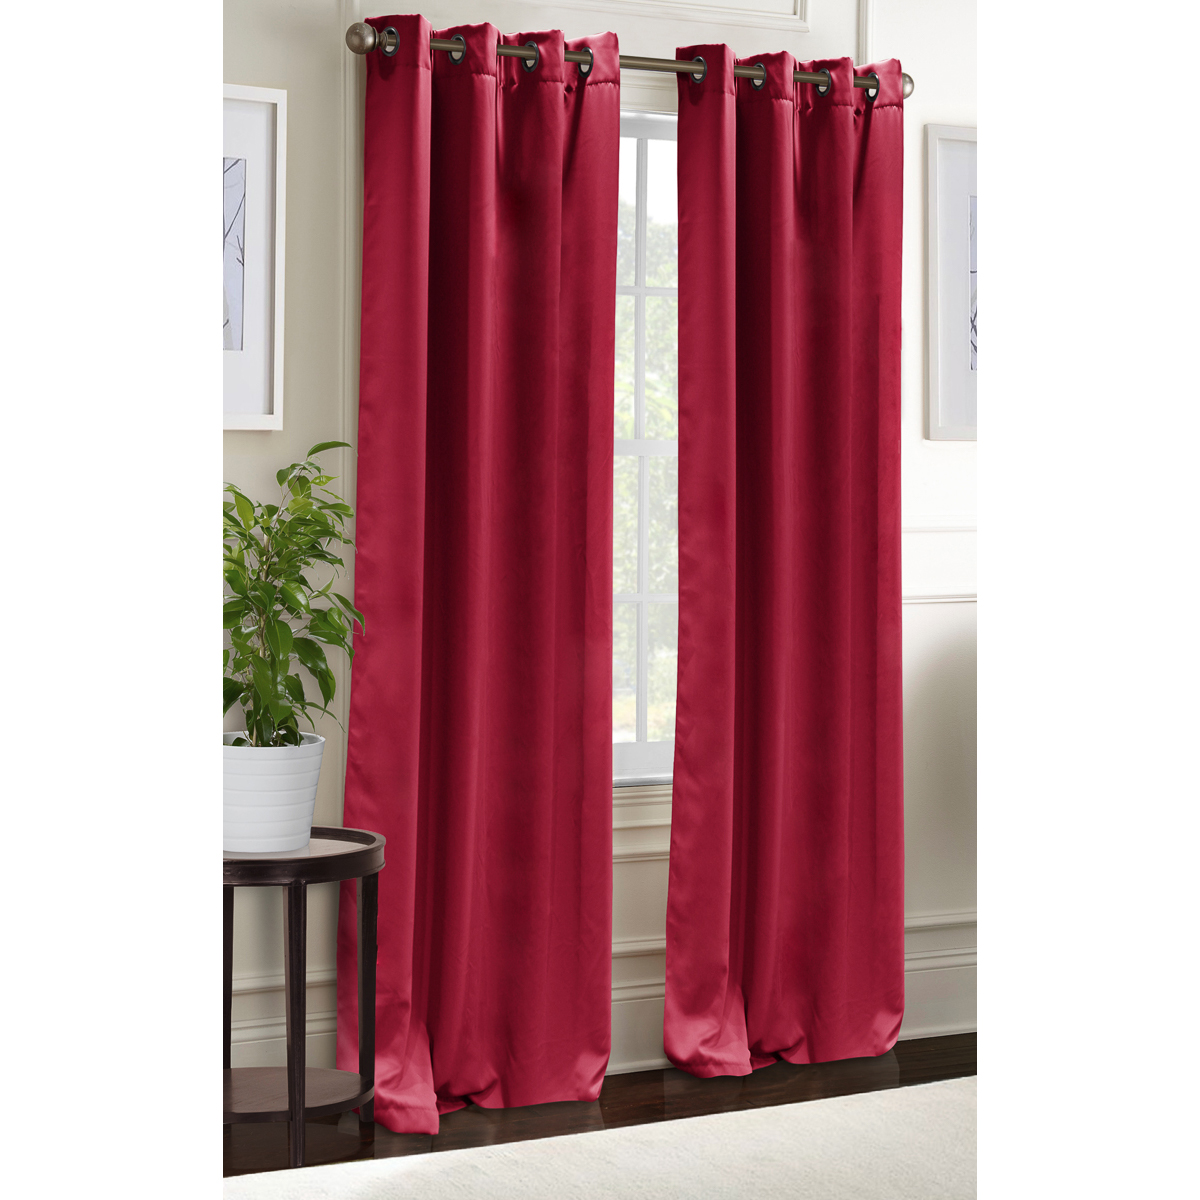 blackout curtains grommet window panel pair 38 x84 room darkening